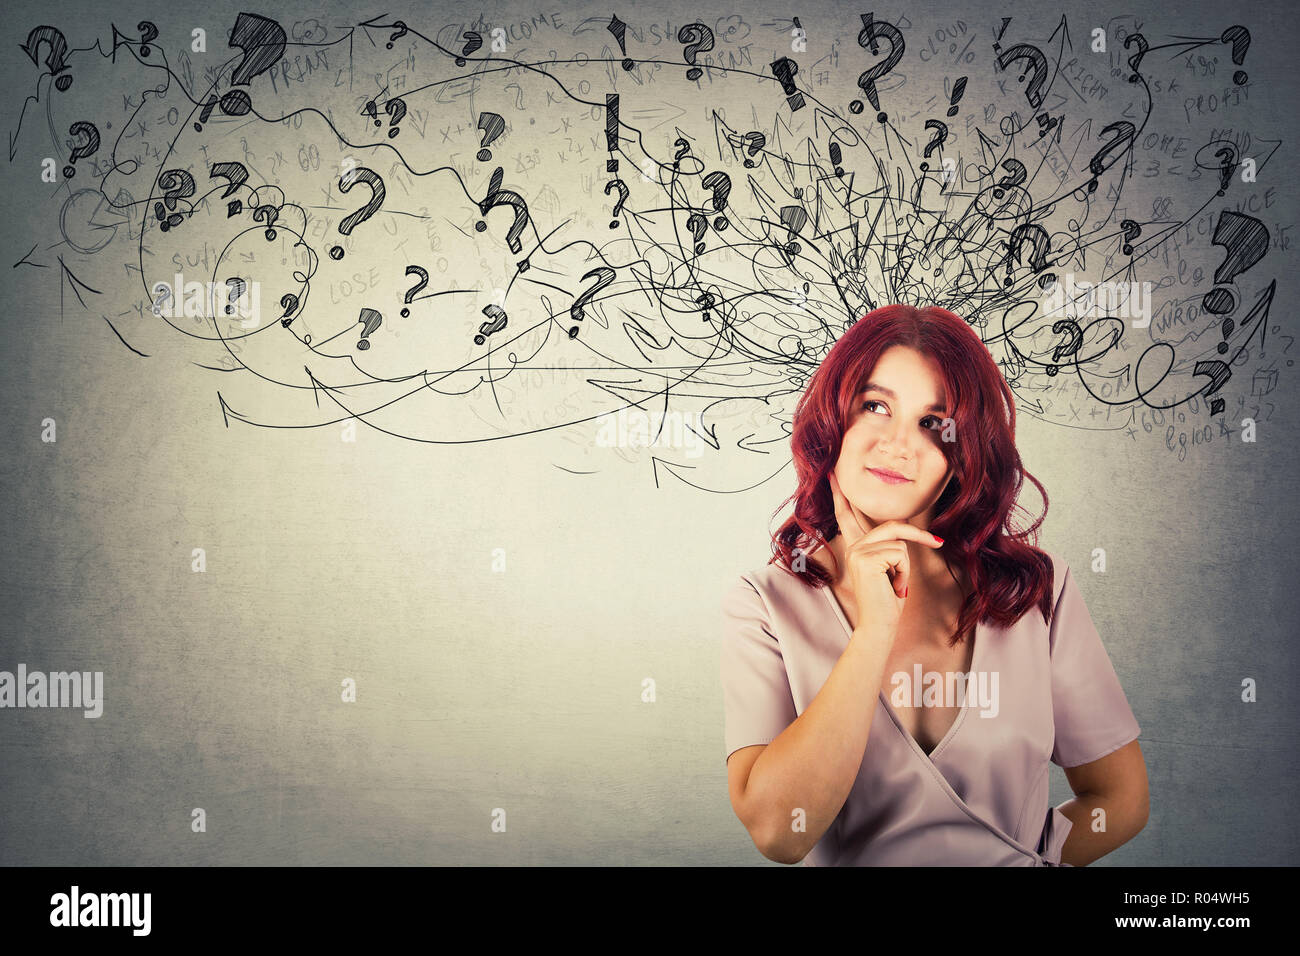 Young redhead pensive woman having questions holding hand under chin thoughtful looking at arrows and mess going out of head. - Stock Image